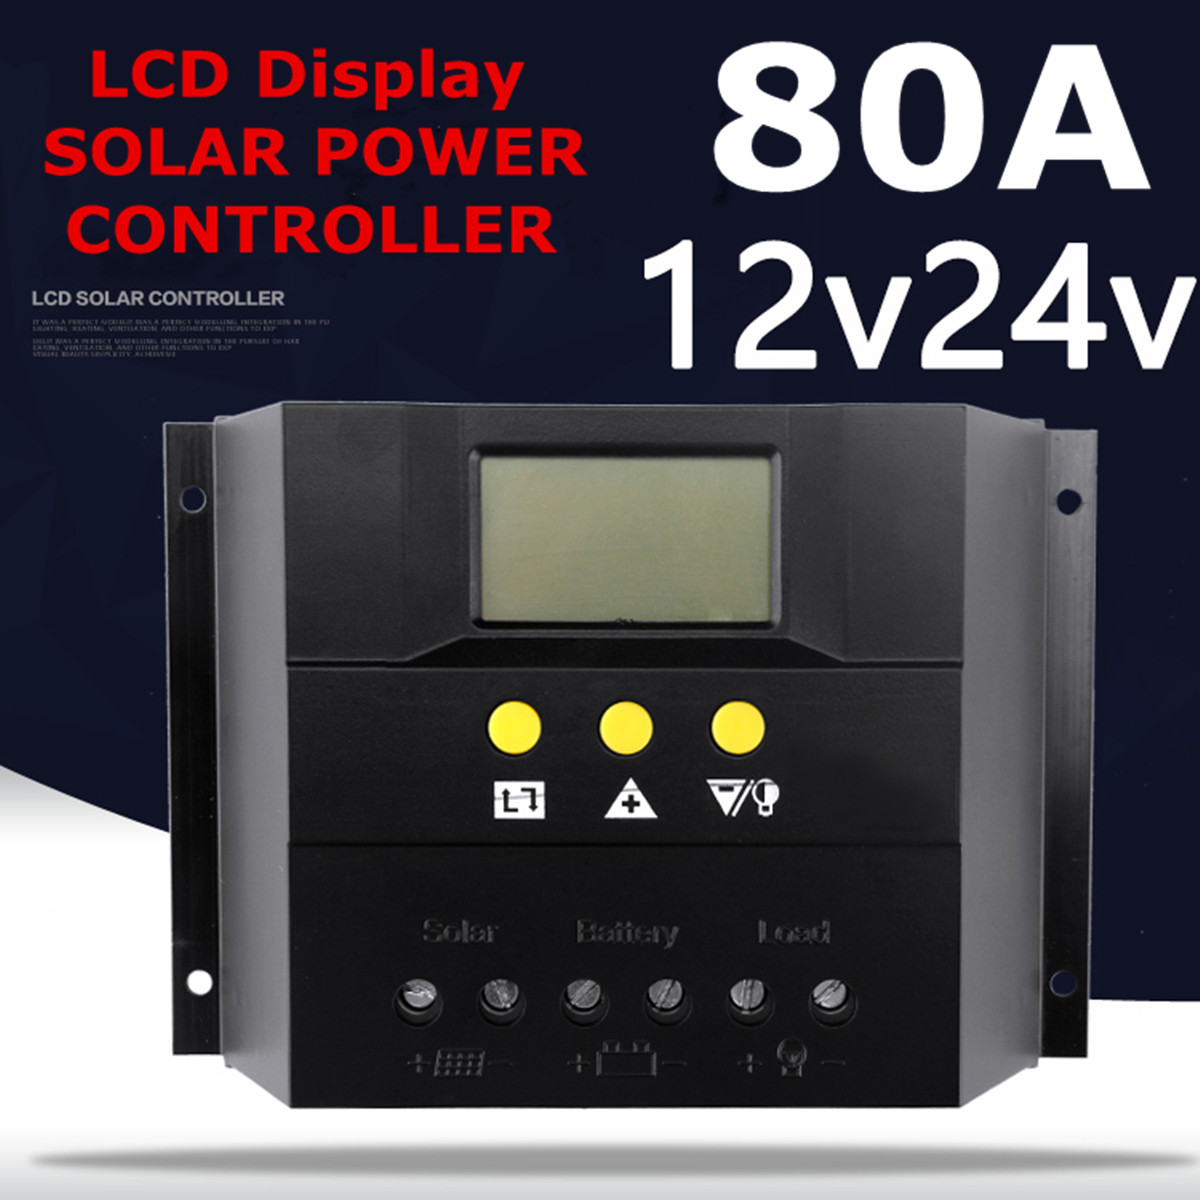 12v 24v 1920w Max Pwm Charging Mode 80a Solar Charge Controller Auto Panel Charger Circuit Battery Regulator Abs Short Protection